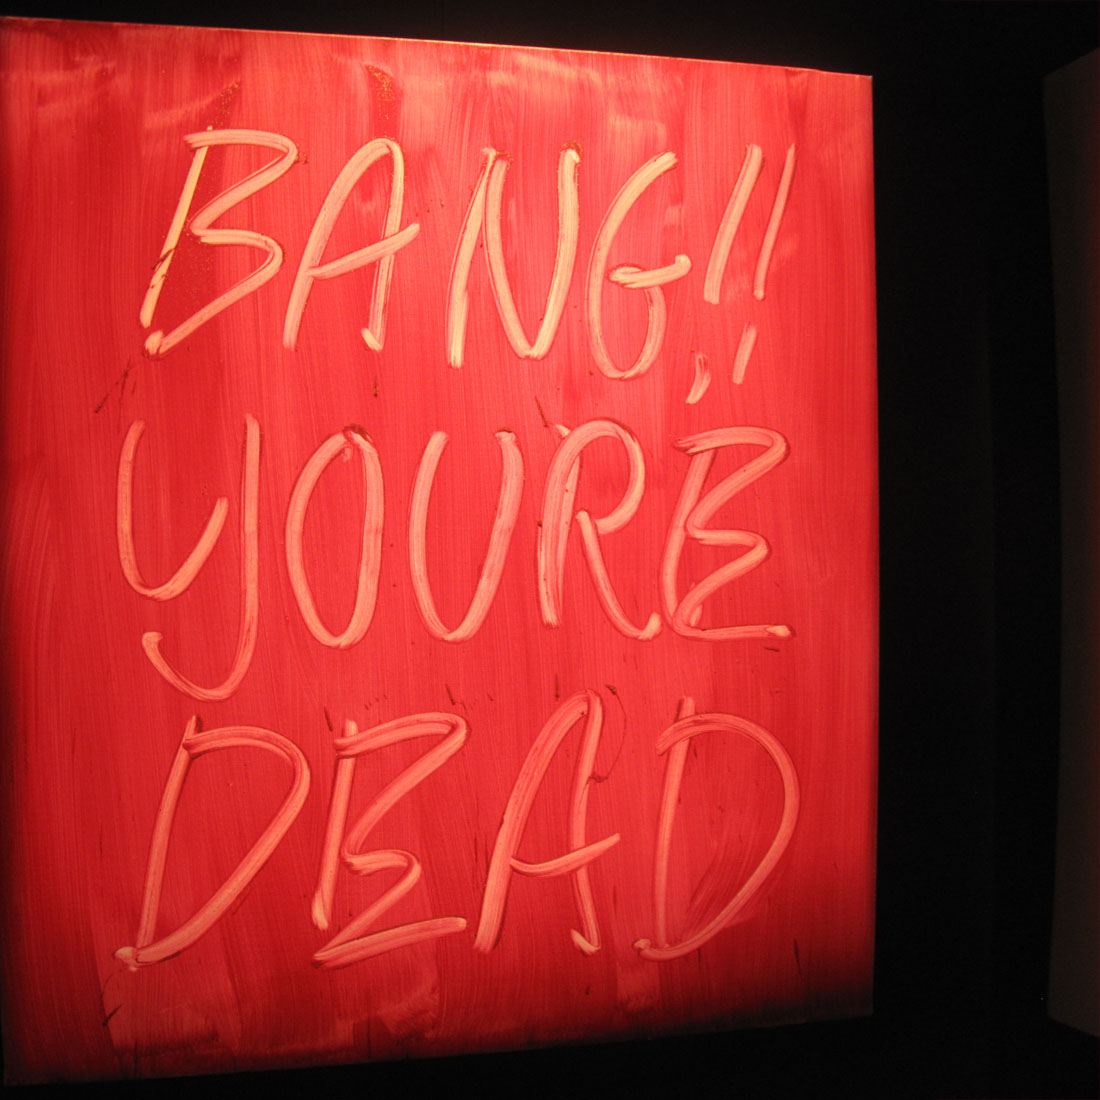 Bang your dead